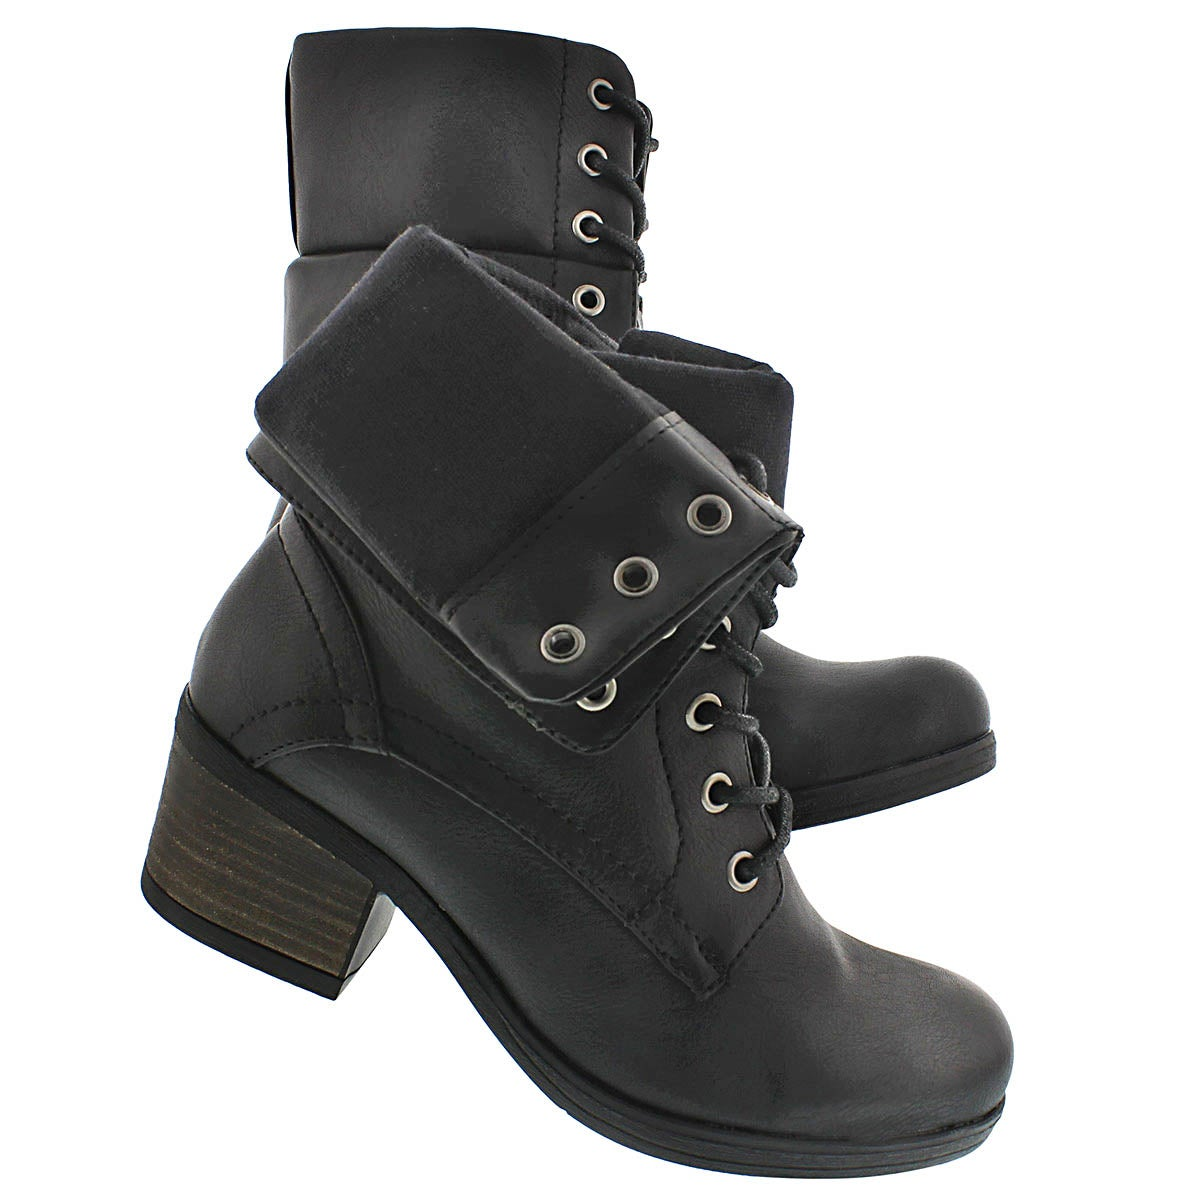 Lds Bria blk fold down combat boot